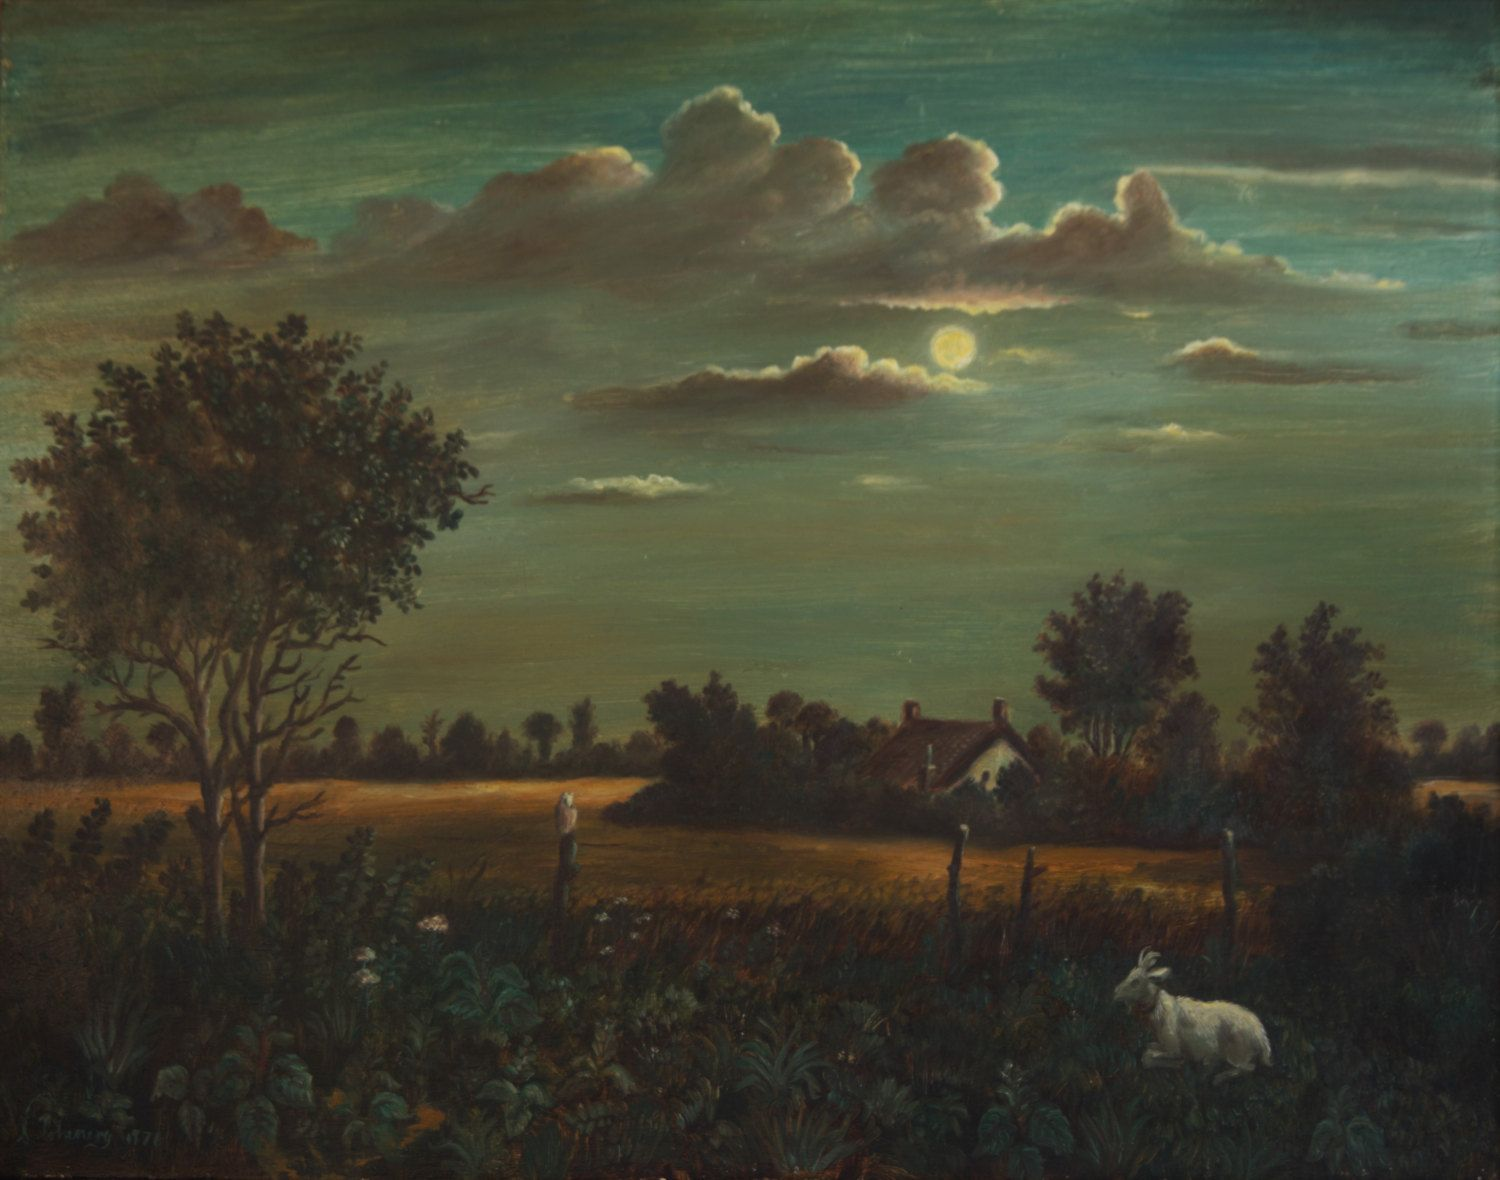 Moonlit English Landscape With Goat And Owl Original Oil Painting Signed By The Artist S Chenery Vintage Landscape Landscape Paintings Original Oil Painting